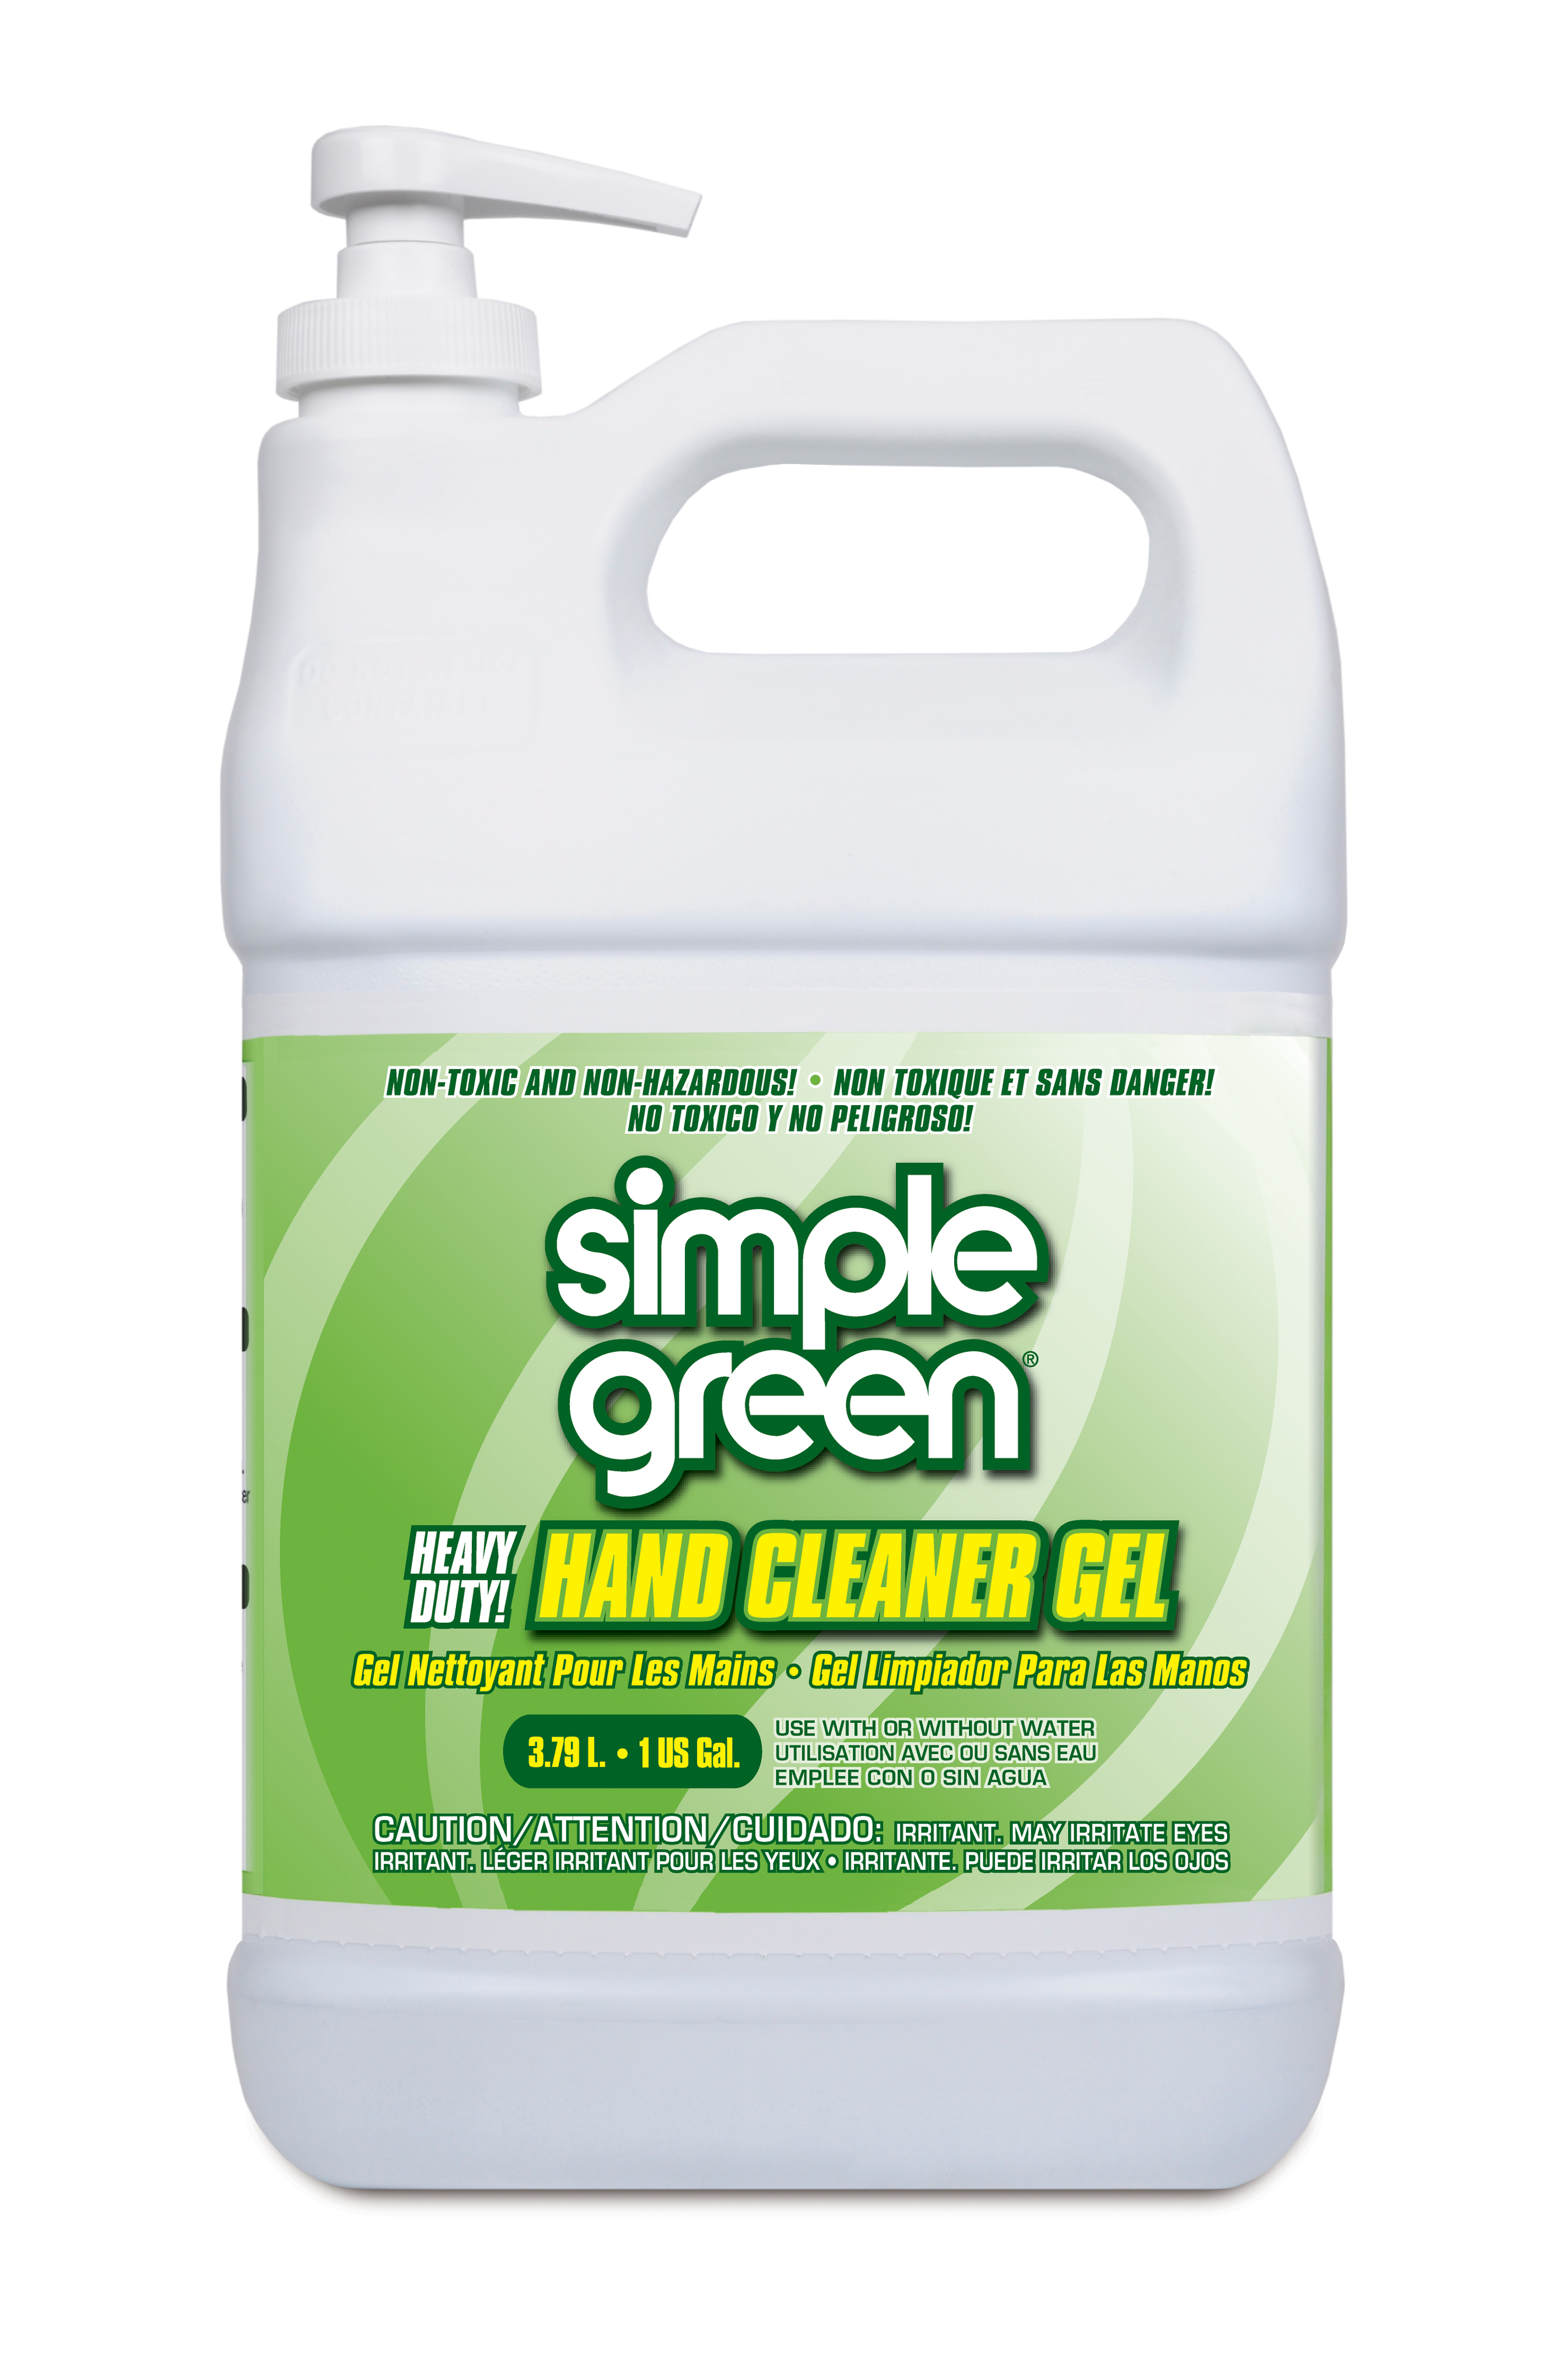 Simple Green Hand Cleaner Gel 3.78 L Pump - Pack of 4